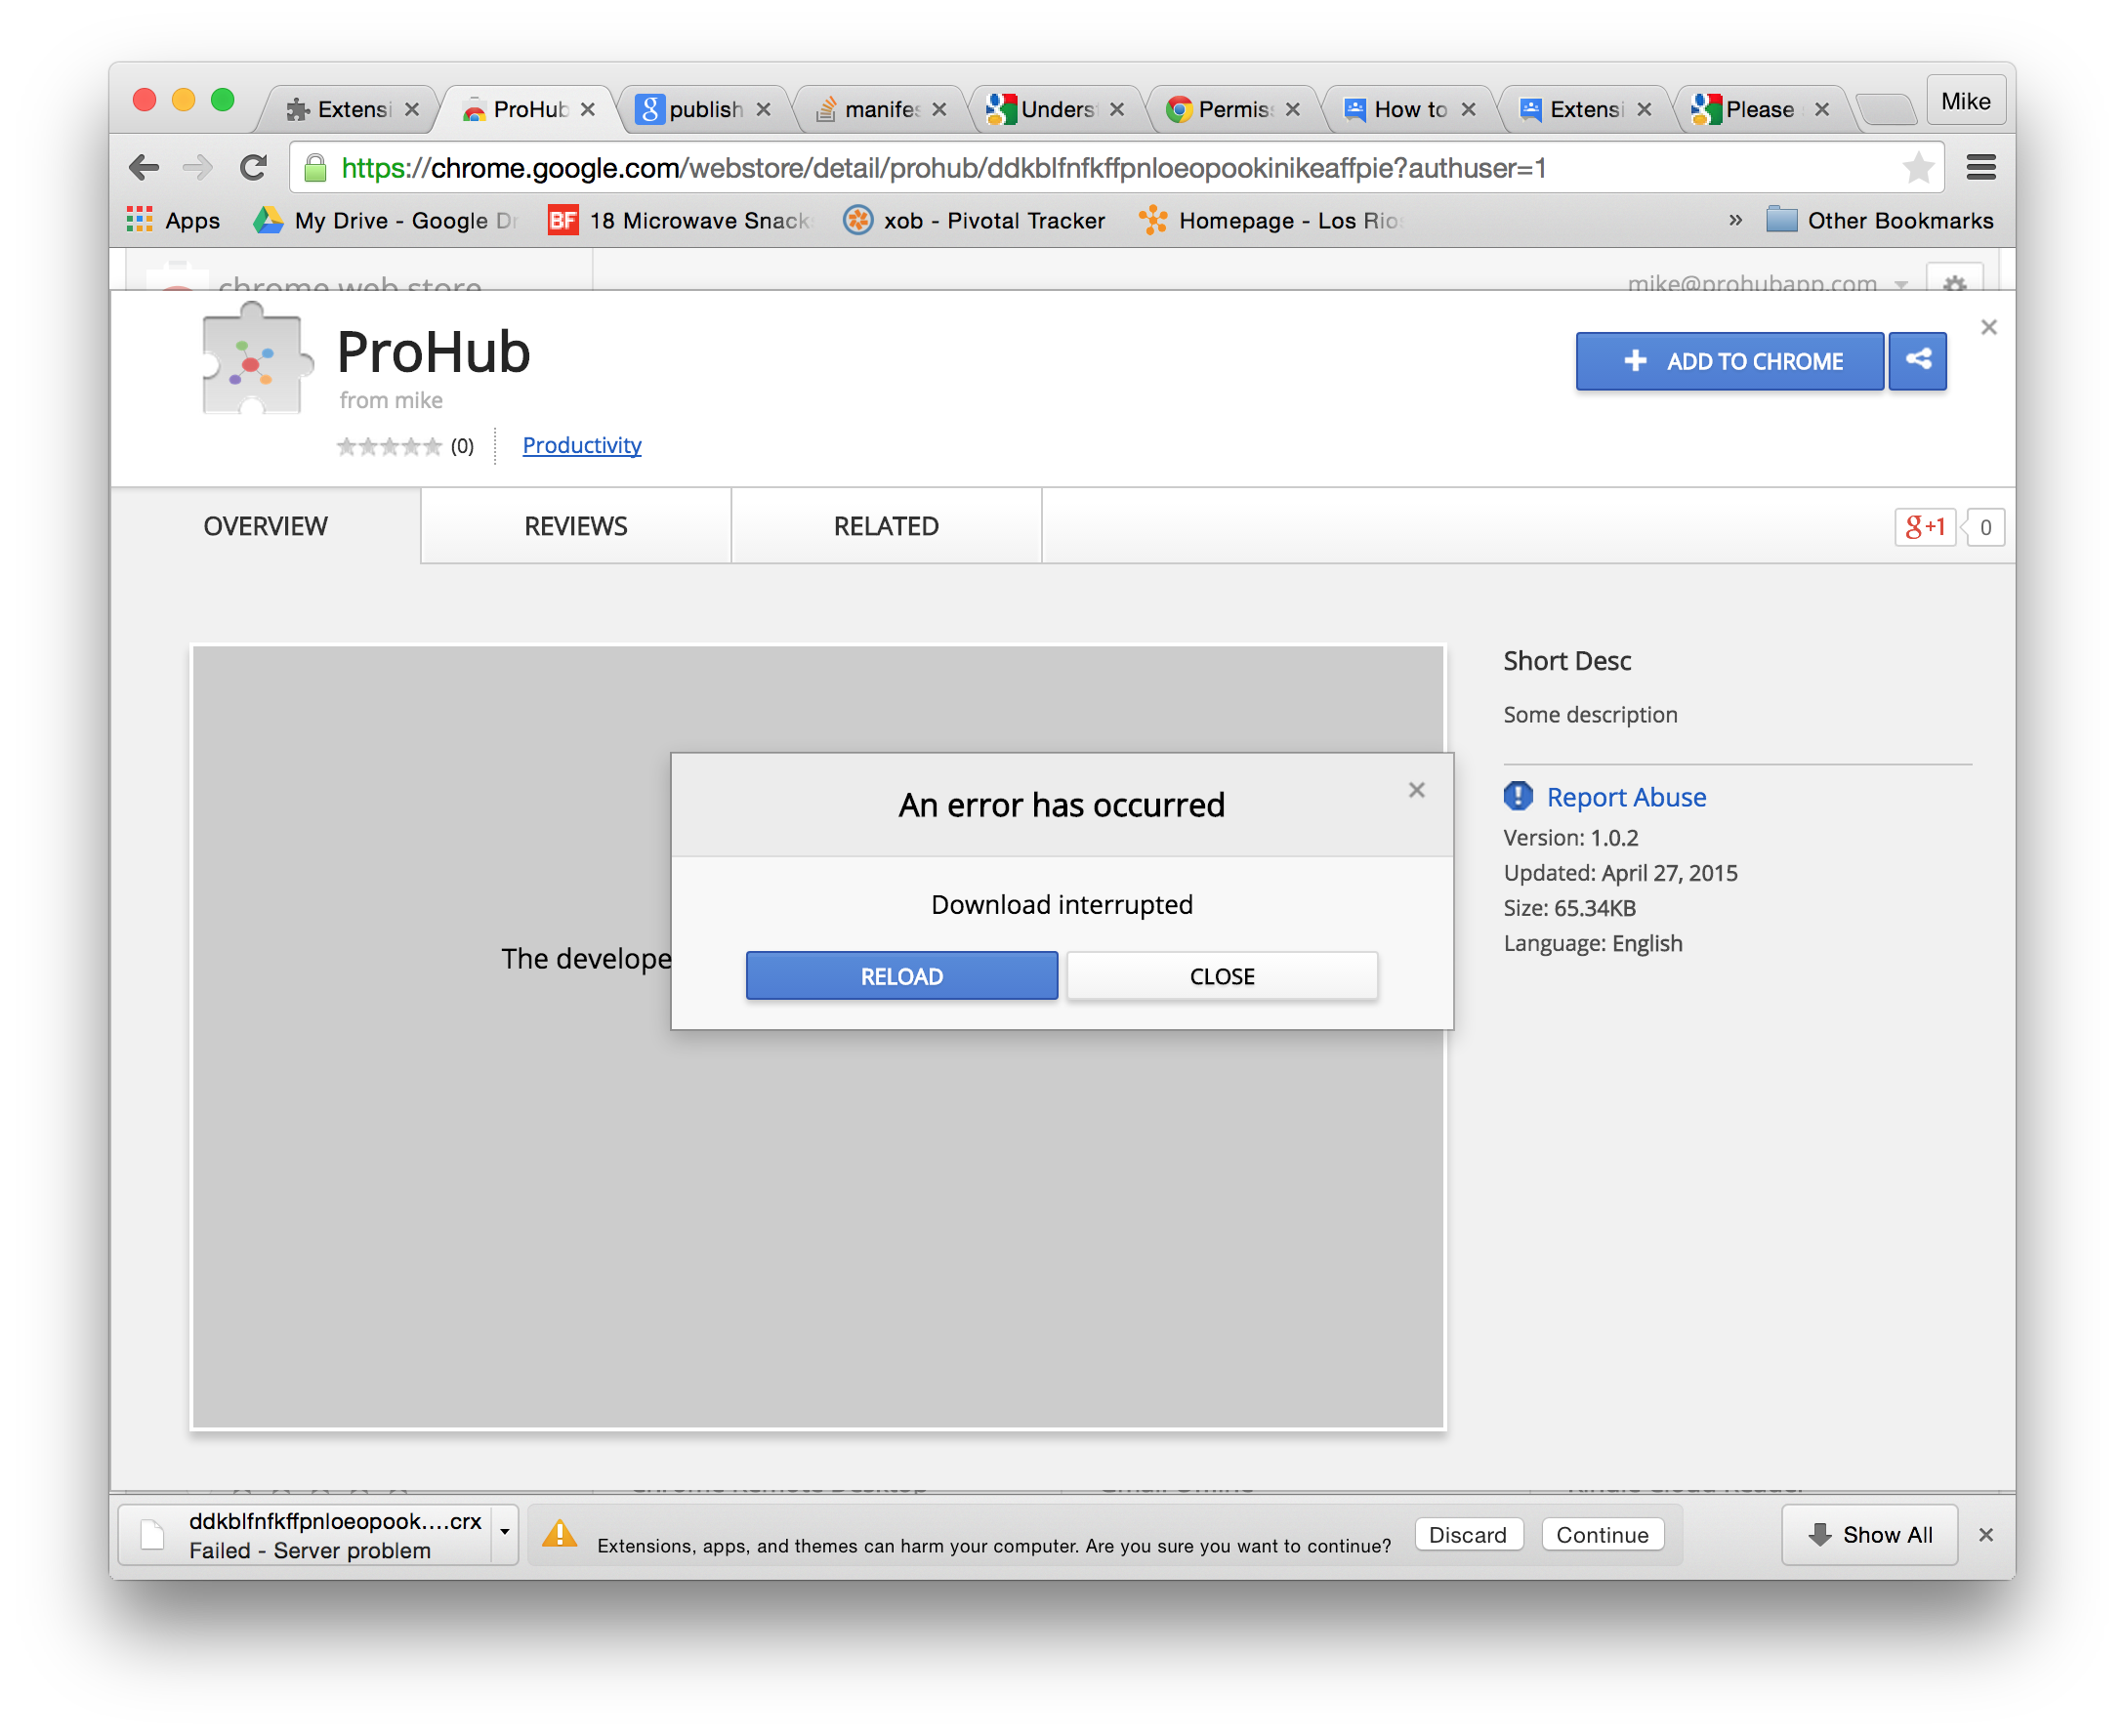 Chrome extension package is invalid png. Private testing download interupted